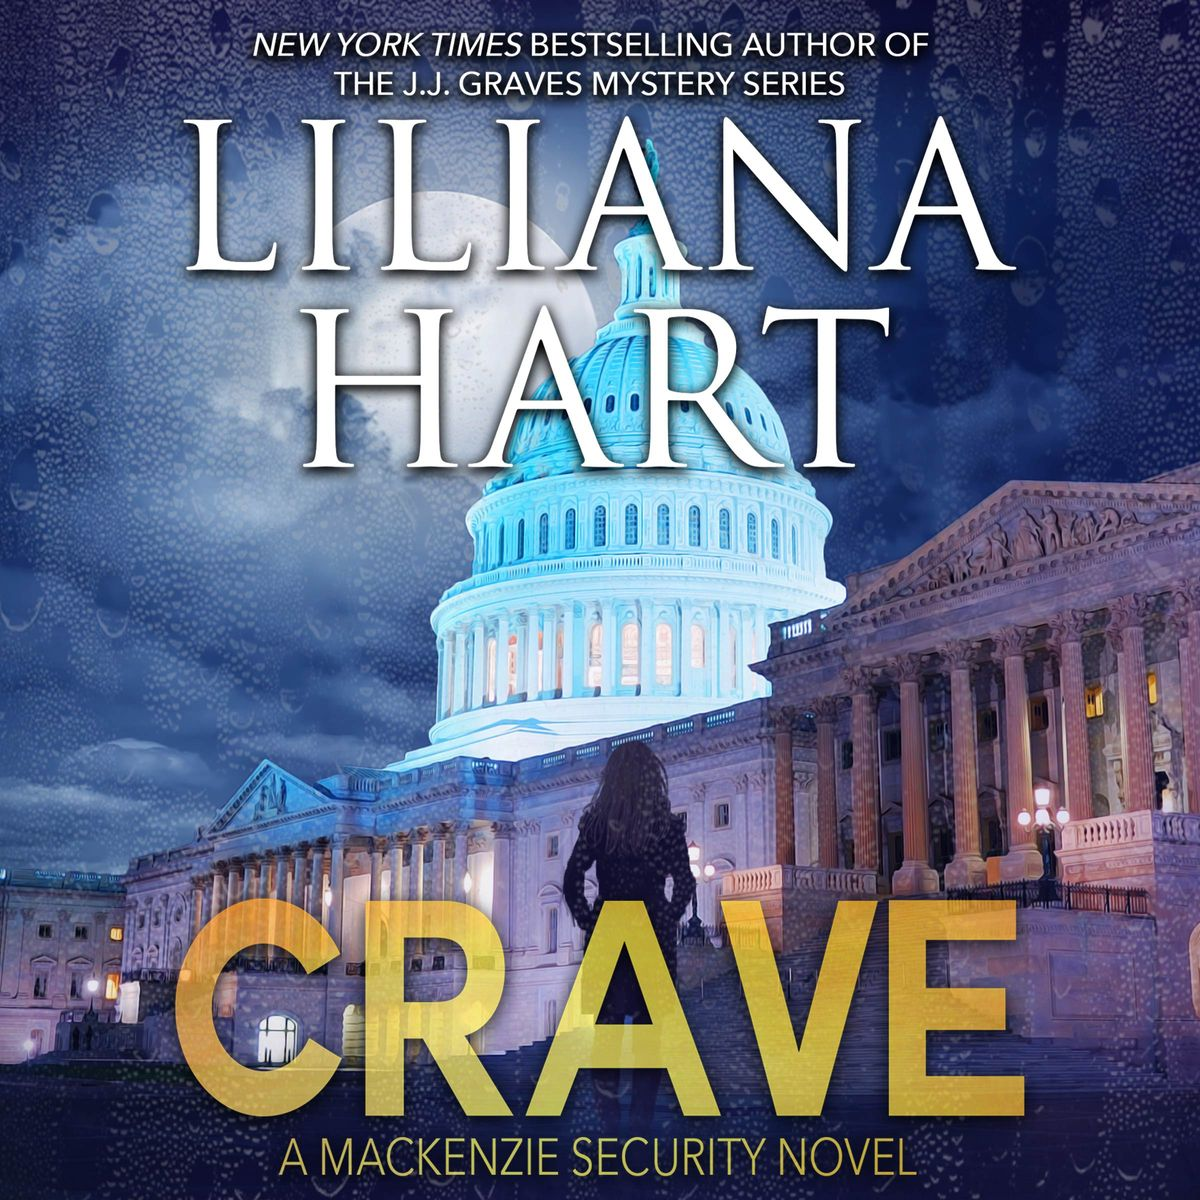 Crave - Audiobook